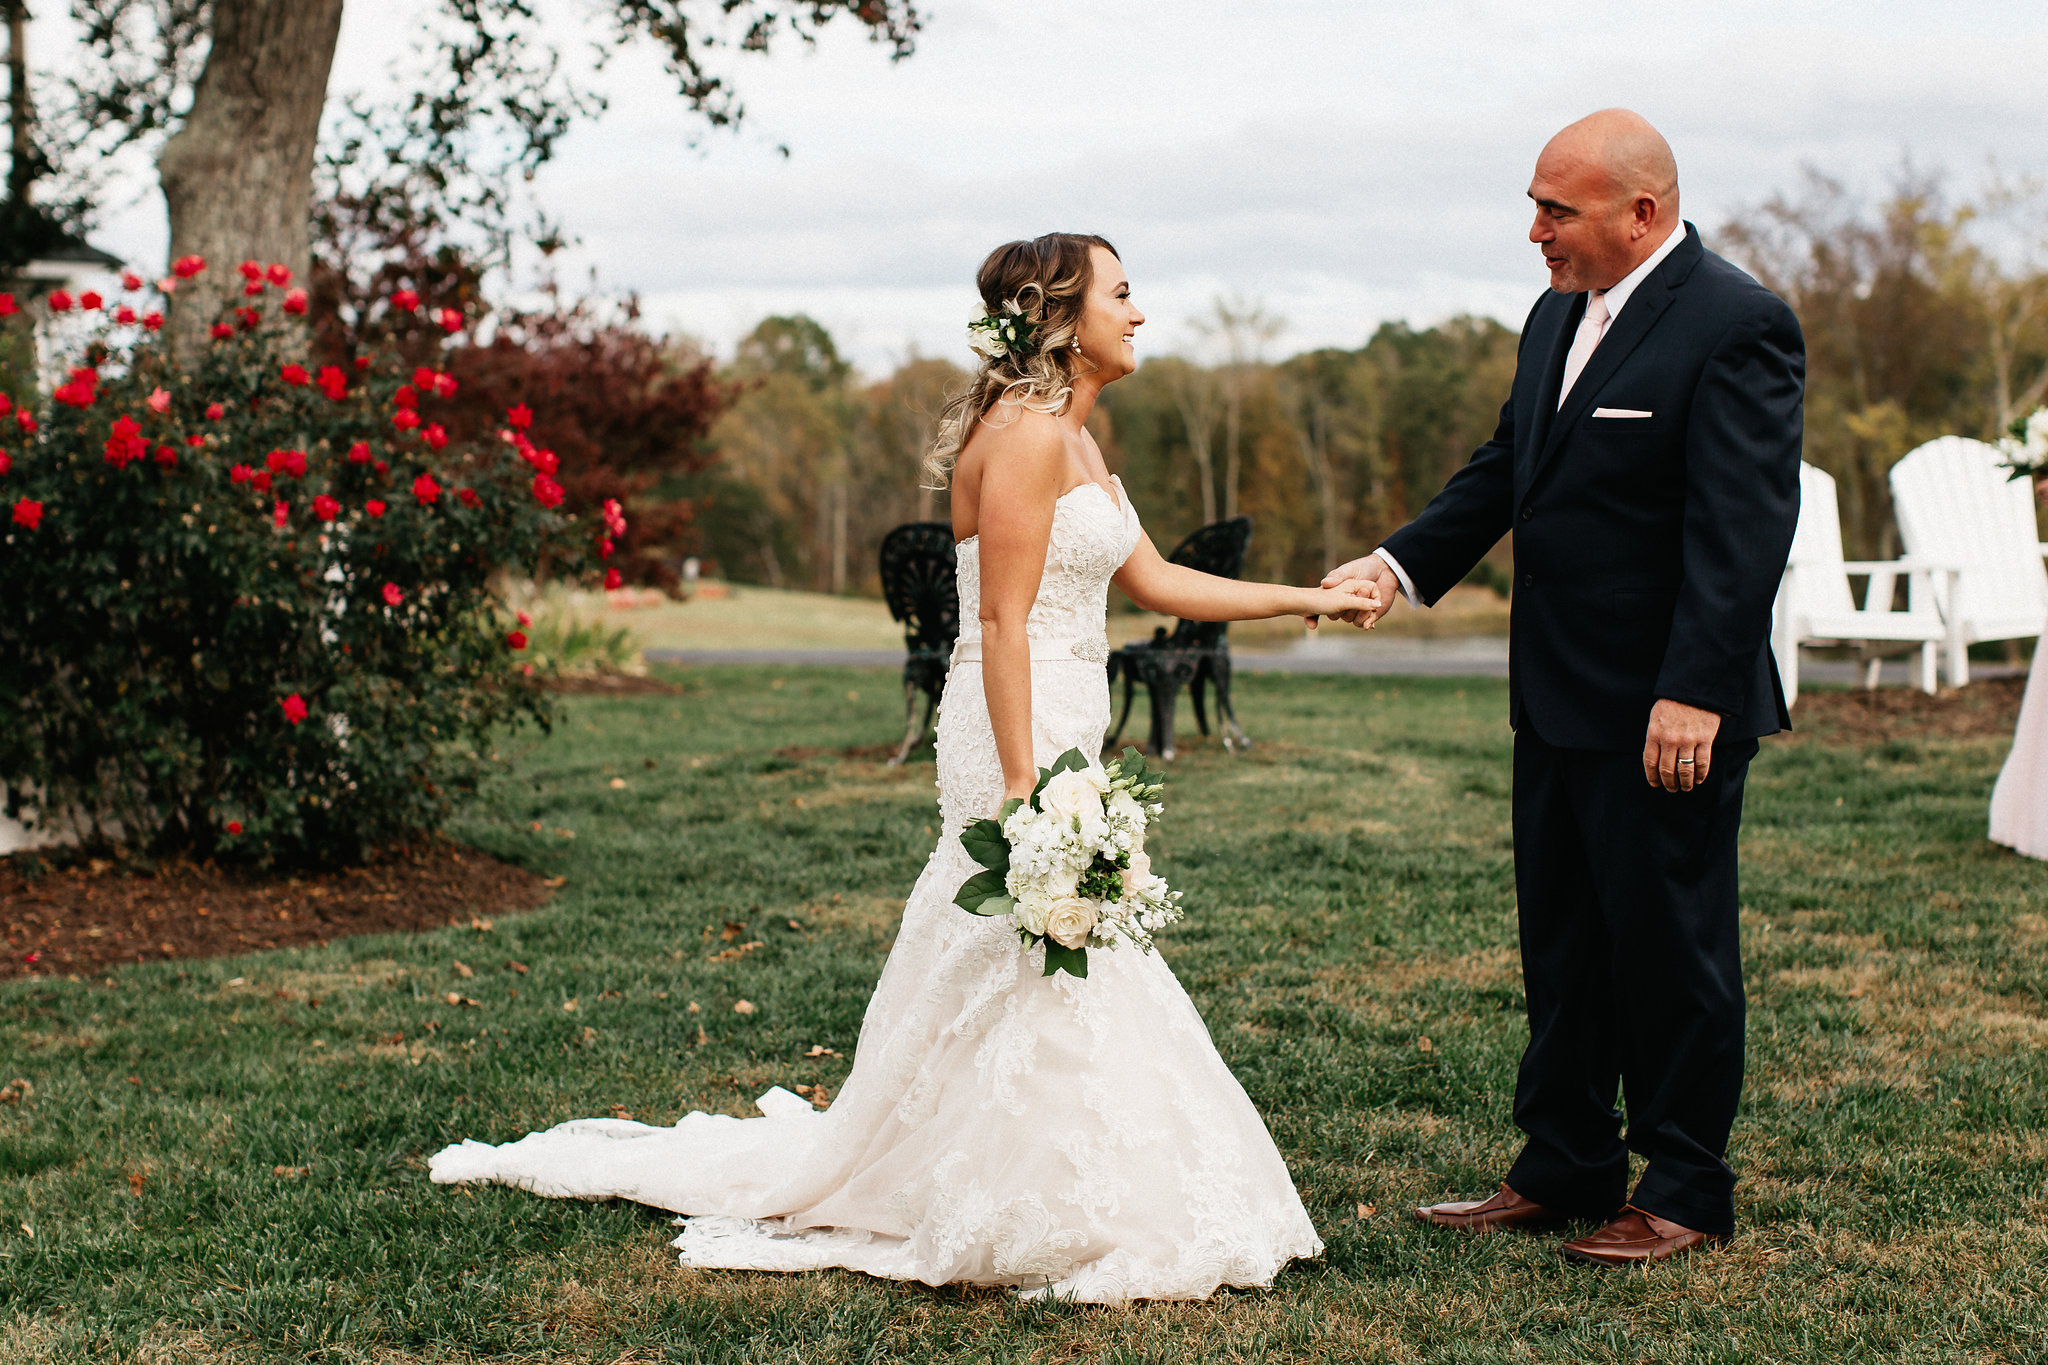 Ashley&NathanMarried2017-11-10at19.26.47PM146.jpg